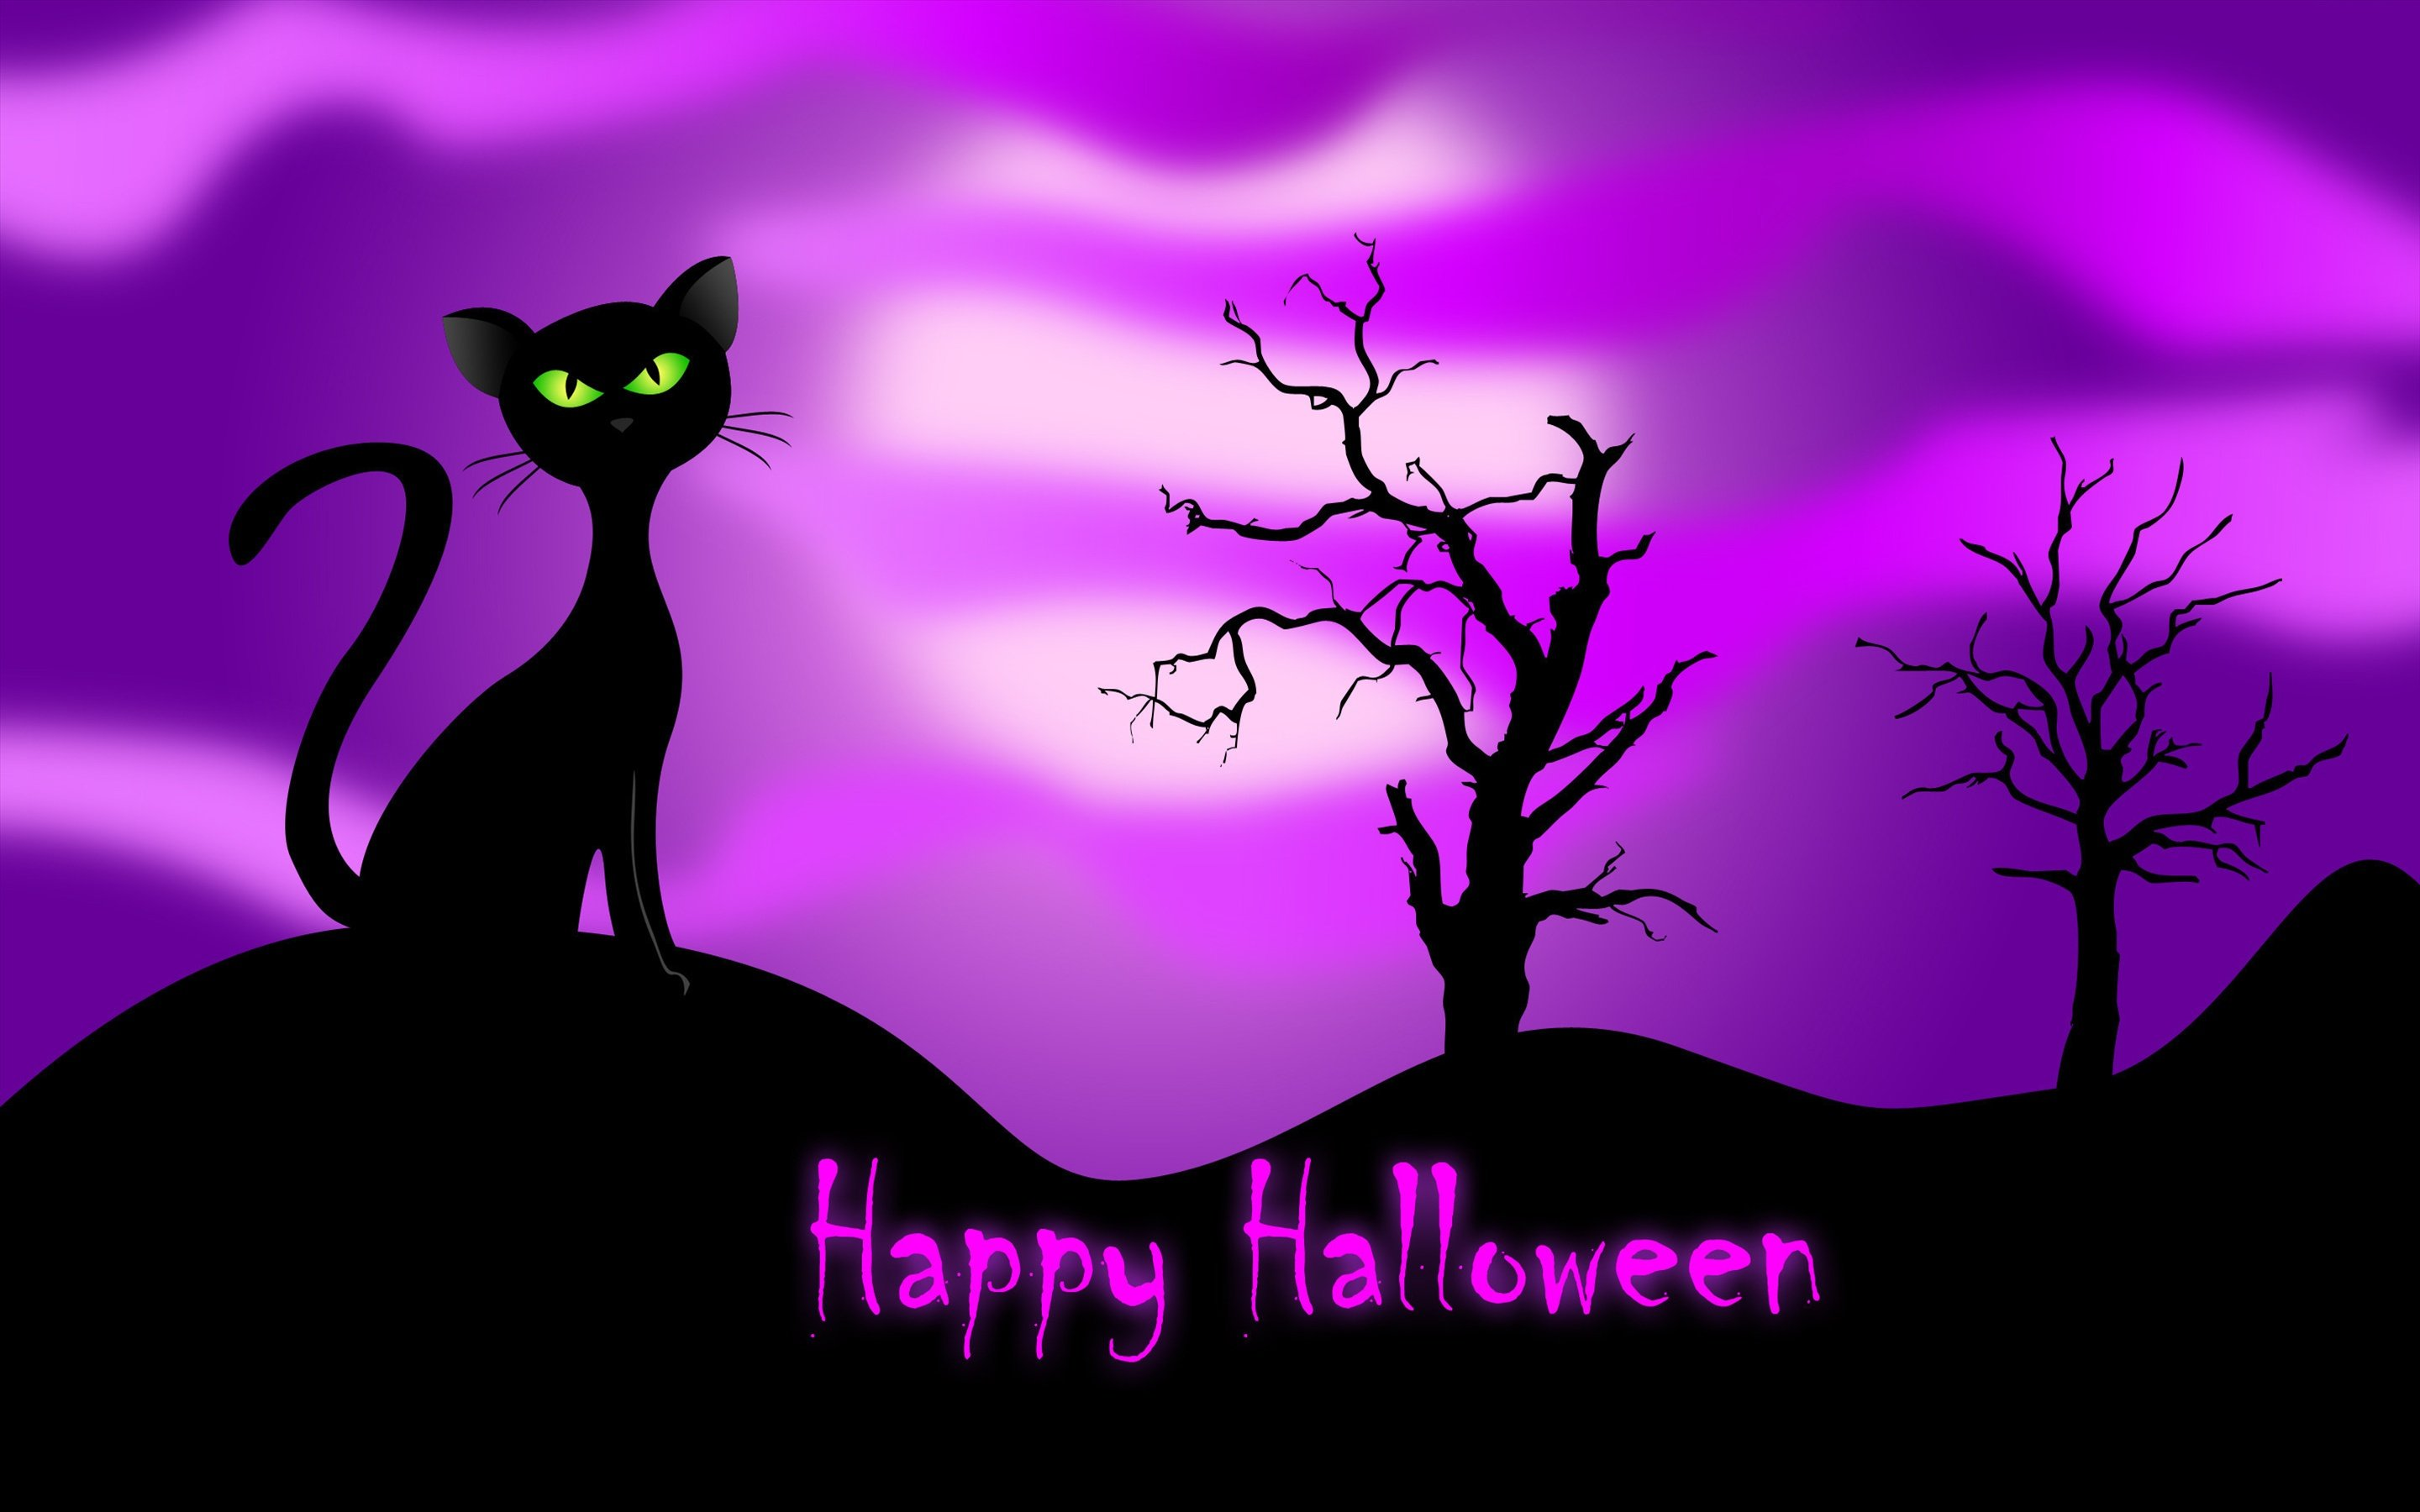 Free Download Happy Halloween Trees Black Cat Fall Purple Hd Wallpaper 1579264 2880x1800 For Your Desktop Mobile Tablet Explore 48 Purple Halloween Wallpapers Purple Halloween Wallpapers Halloween Wallpapers Background Halloween